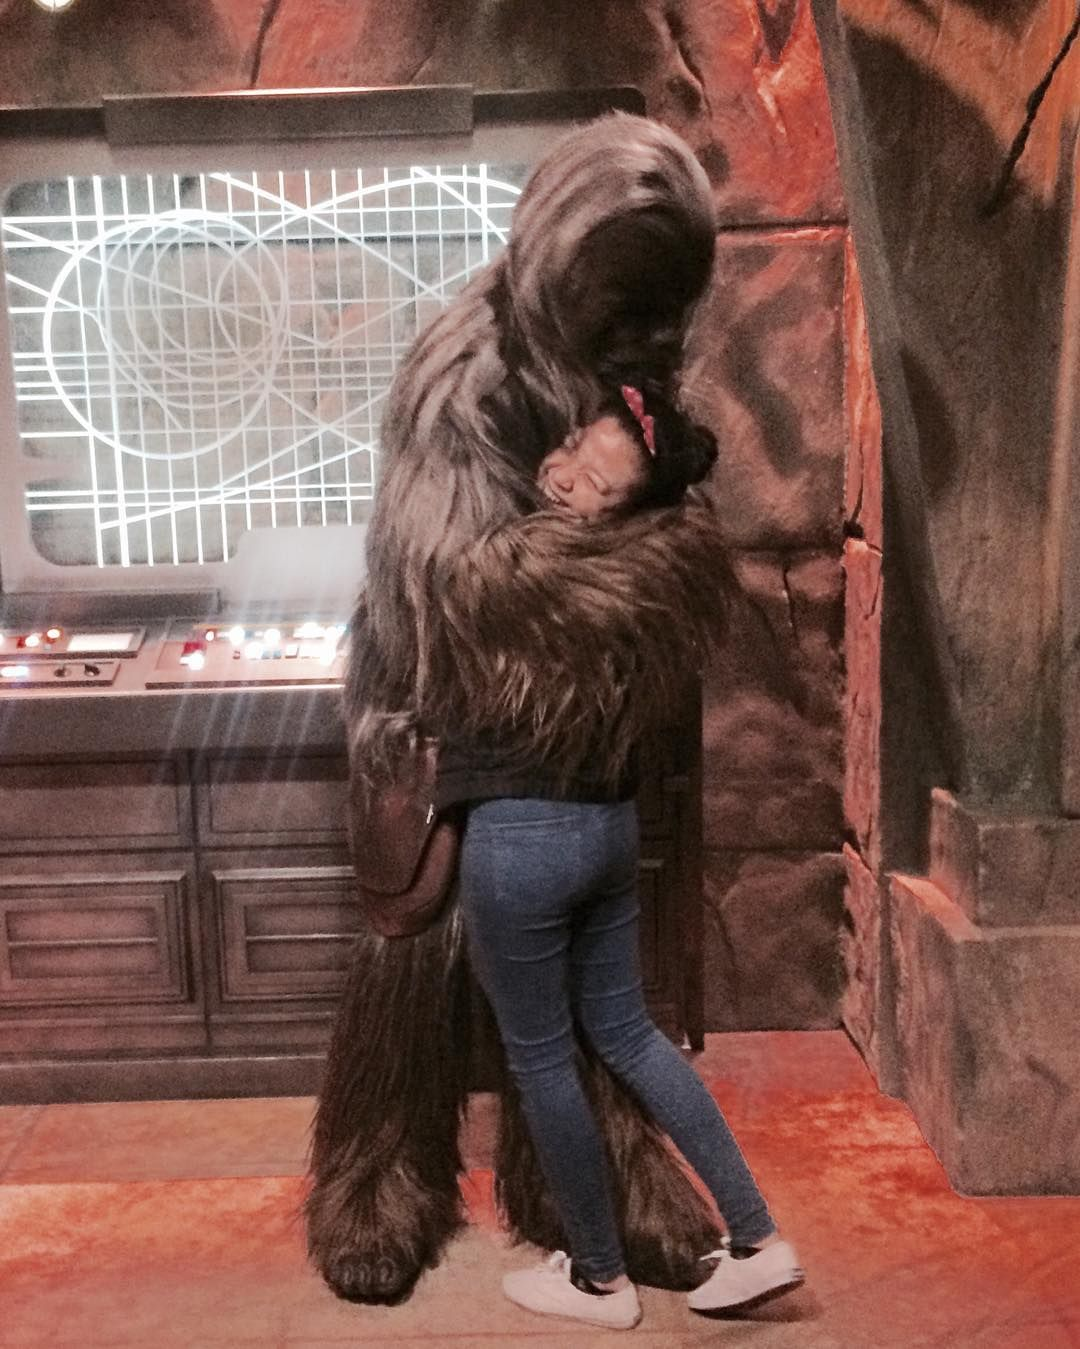 Twas nice meeting you and thank you for the tight hug. I almost died tho. #tinyproblems  #starwars #disneyland #chewy #chewbacca #wookiee by jheliecruz